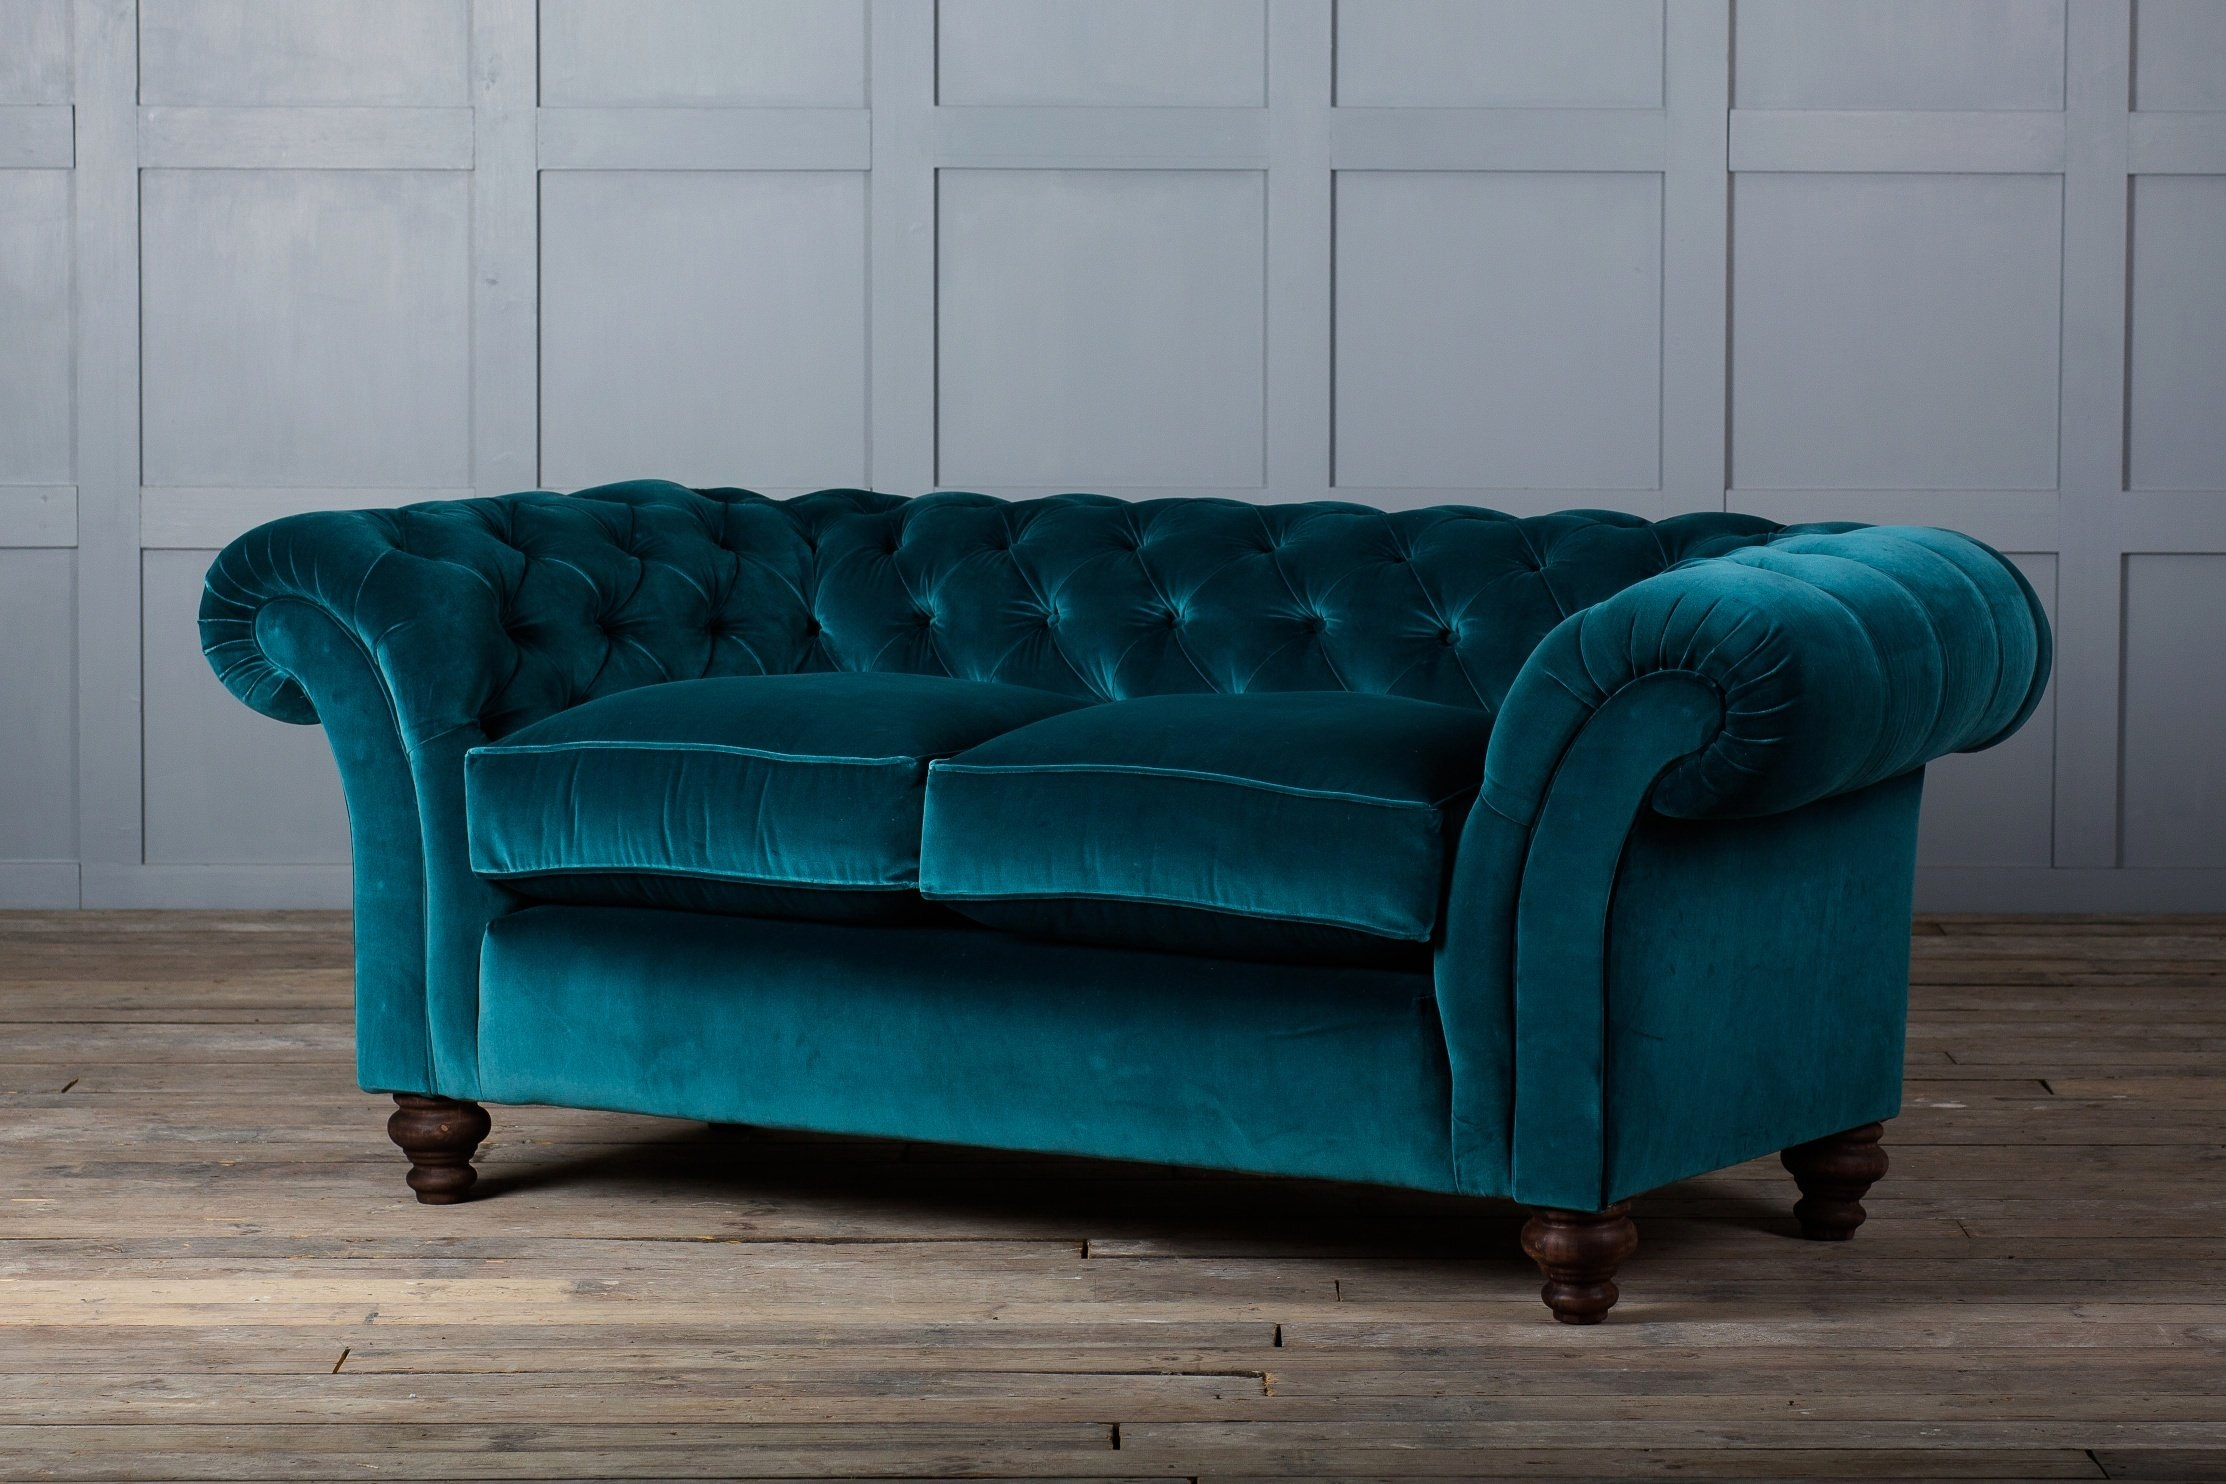 Velvet Couch Blue Inspirational Turquoise Tufted Velvet Sofa